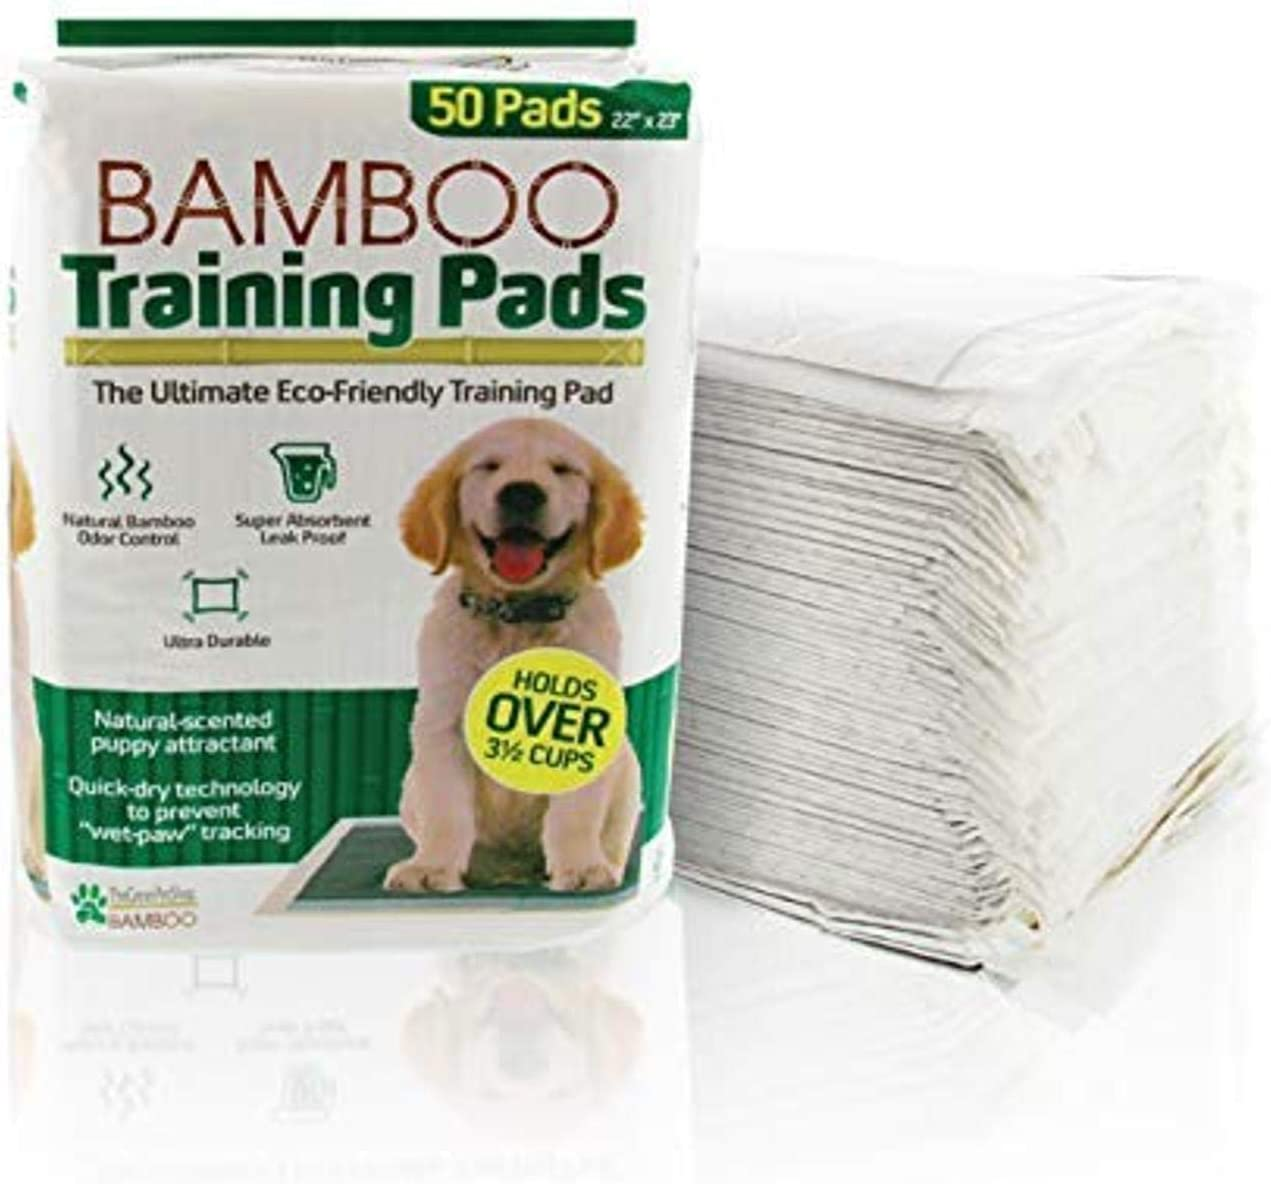 The Green Pet Shop Bamboo Dog Training Pads 50 Count 22 x 23 Inches Super Absorbent Pads With Prolonged Odor Control Ideal Puppy Training Pads or Incontinence Pads for Senior Pets